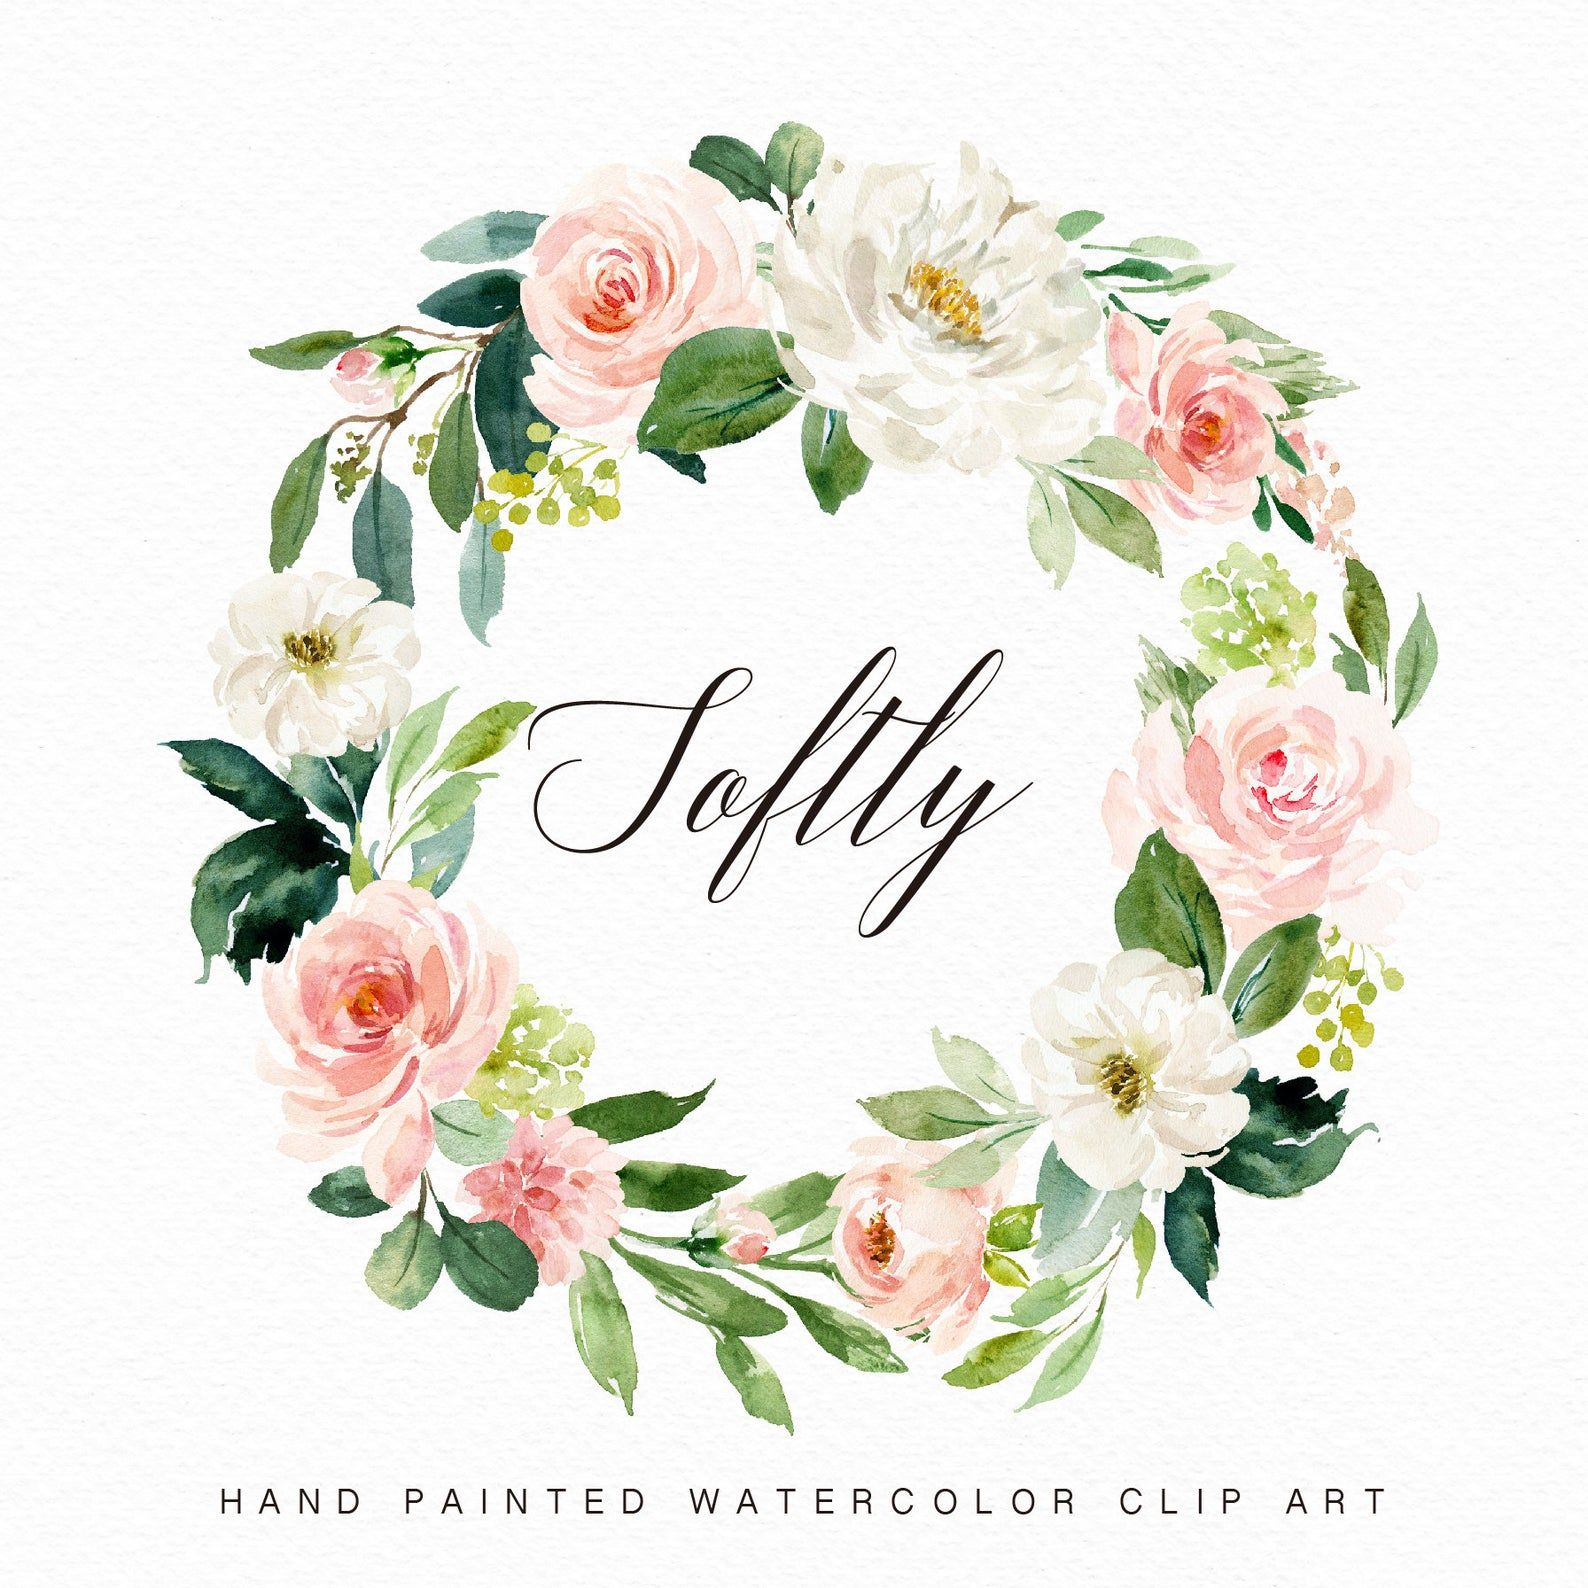 Watercolor Flower Wreath Softly Small Set Individual Png Etsy Watercolor Flower Wreath Floral Wreath Watercolor Watercolor Flowers